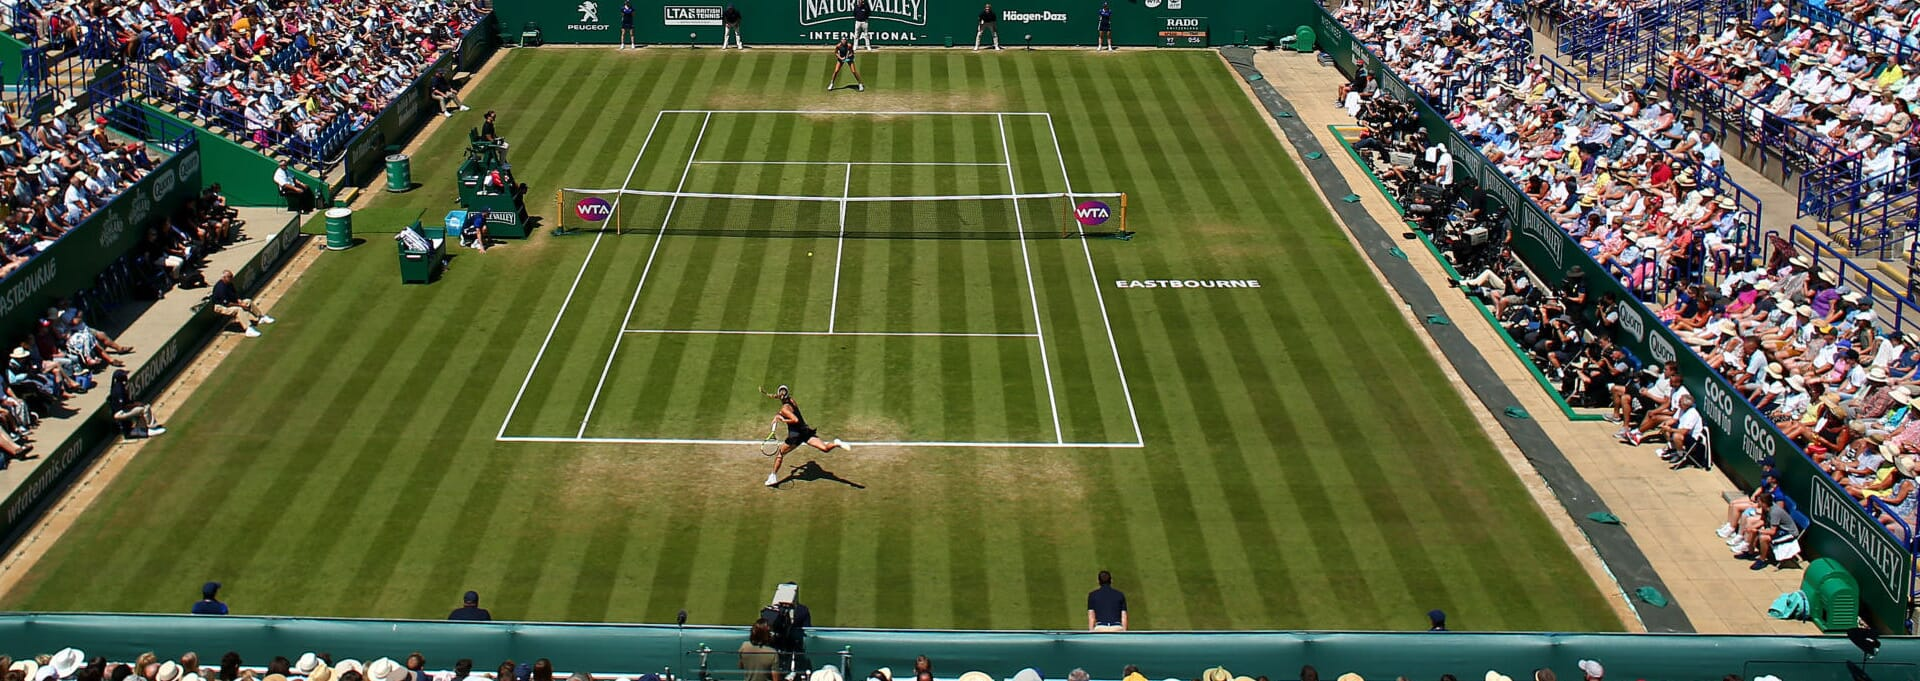 Nature Valley International Tennis VIP Corporate Hospitality Royal Albert Hall Champions Wimbledon ATP Queens Club Fevertree Classic Aegon Boodles